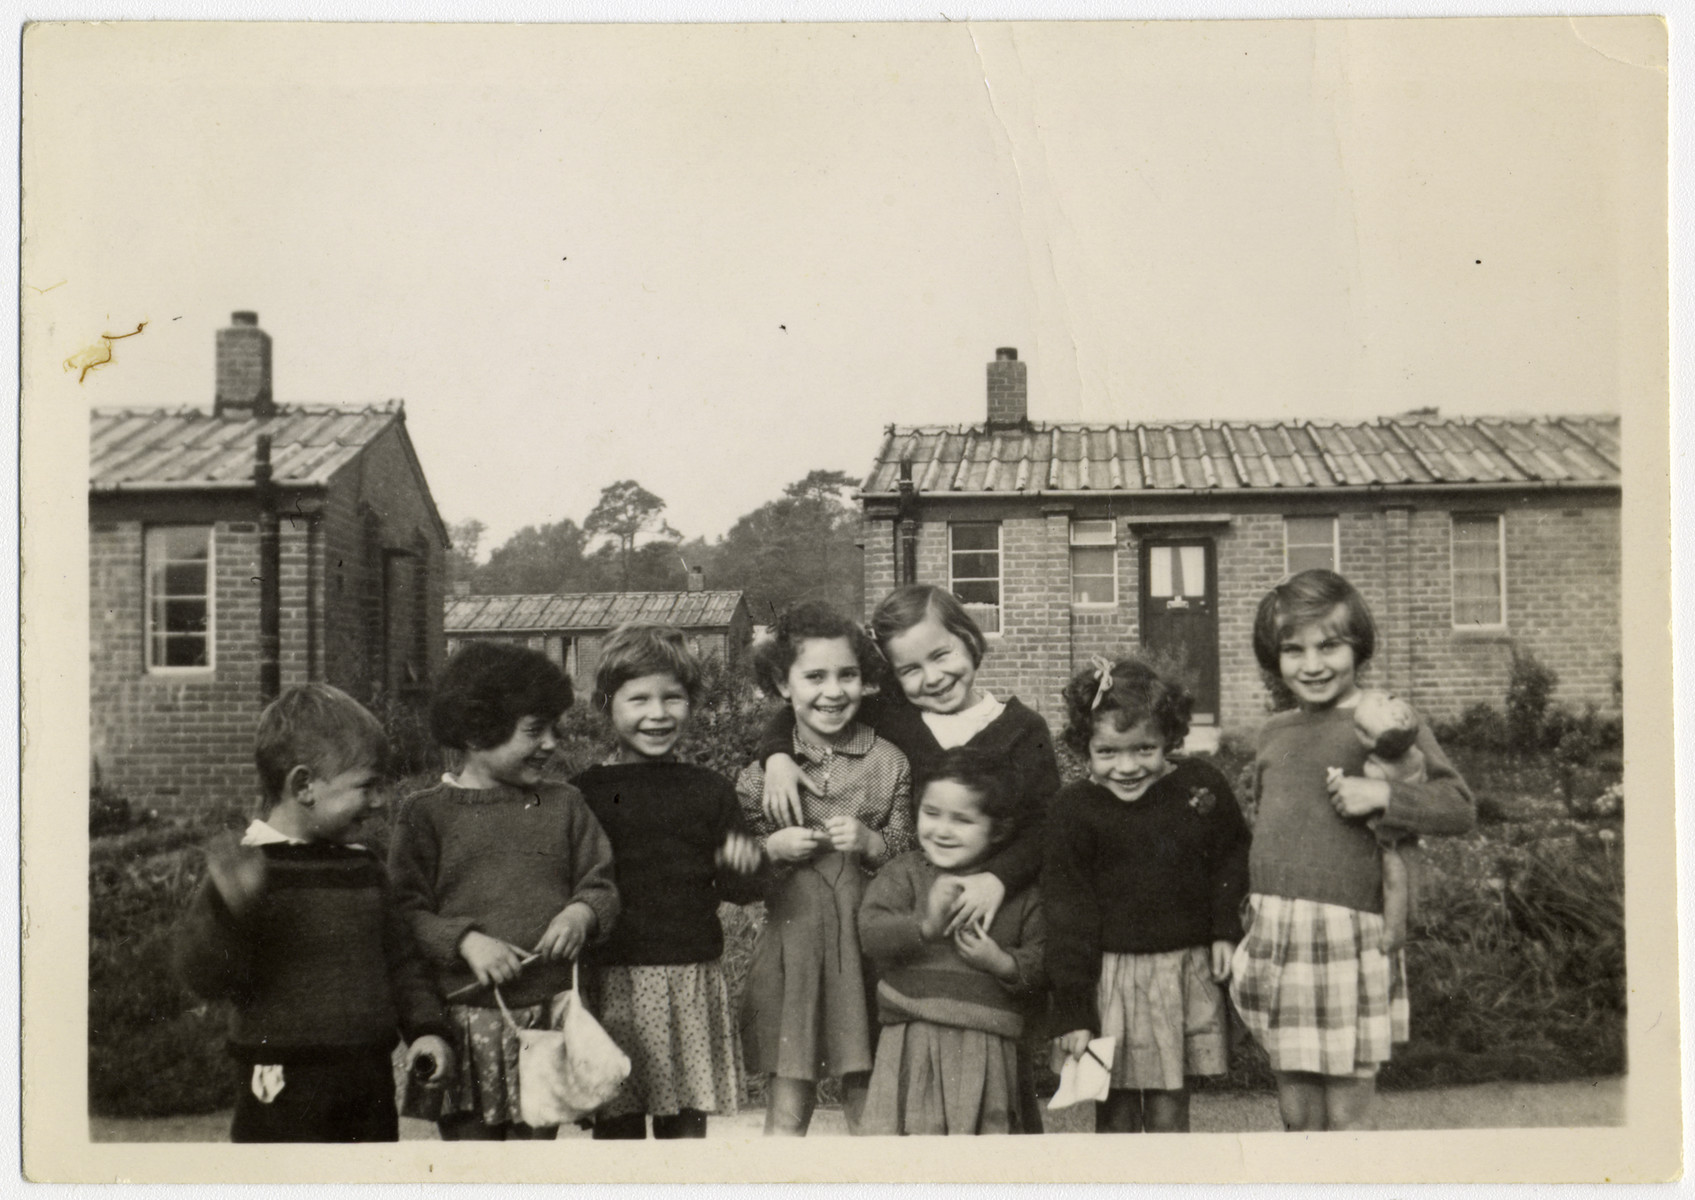 Group portrait of young child survivors in Windermere, England.